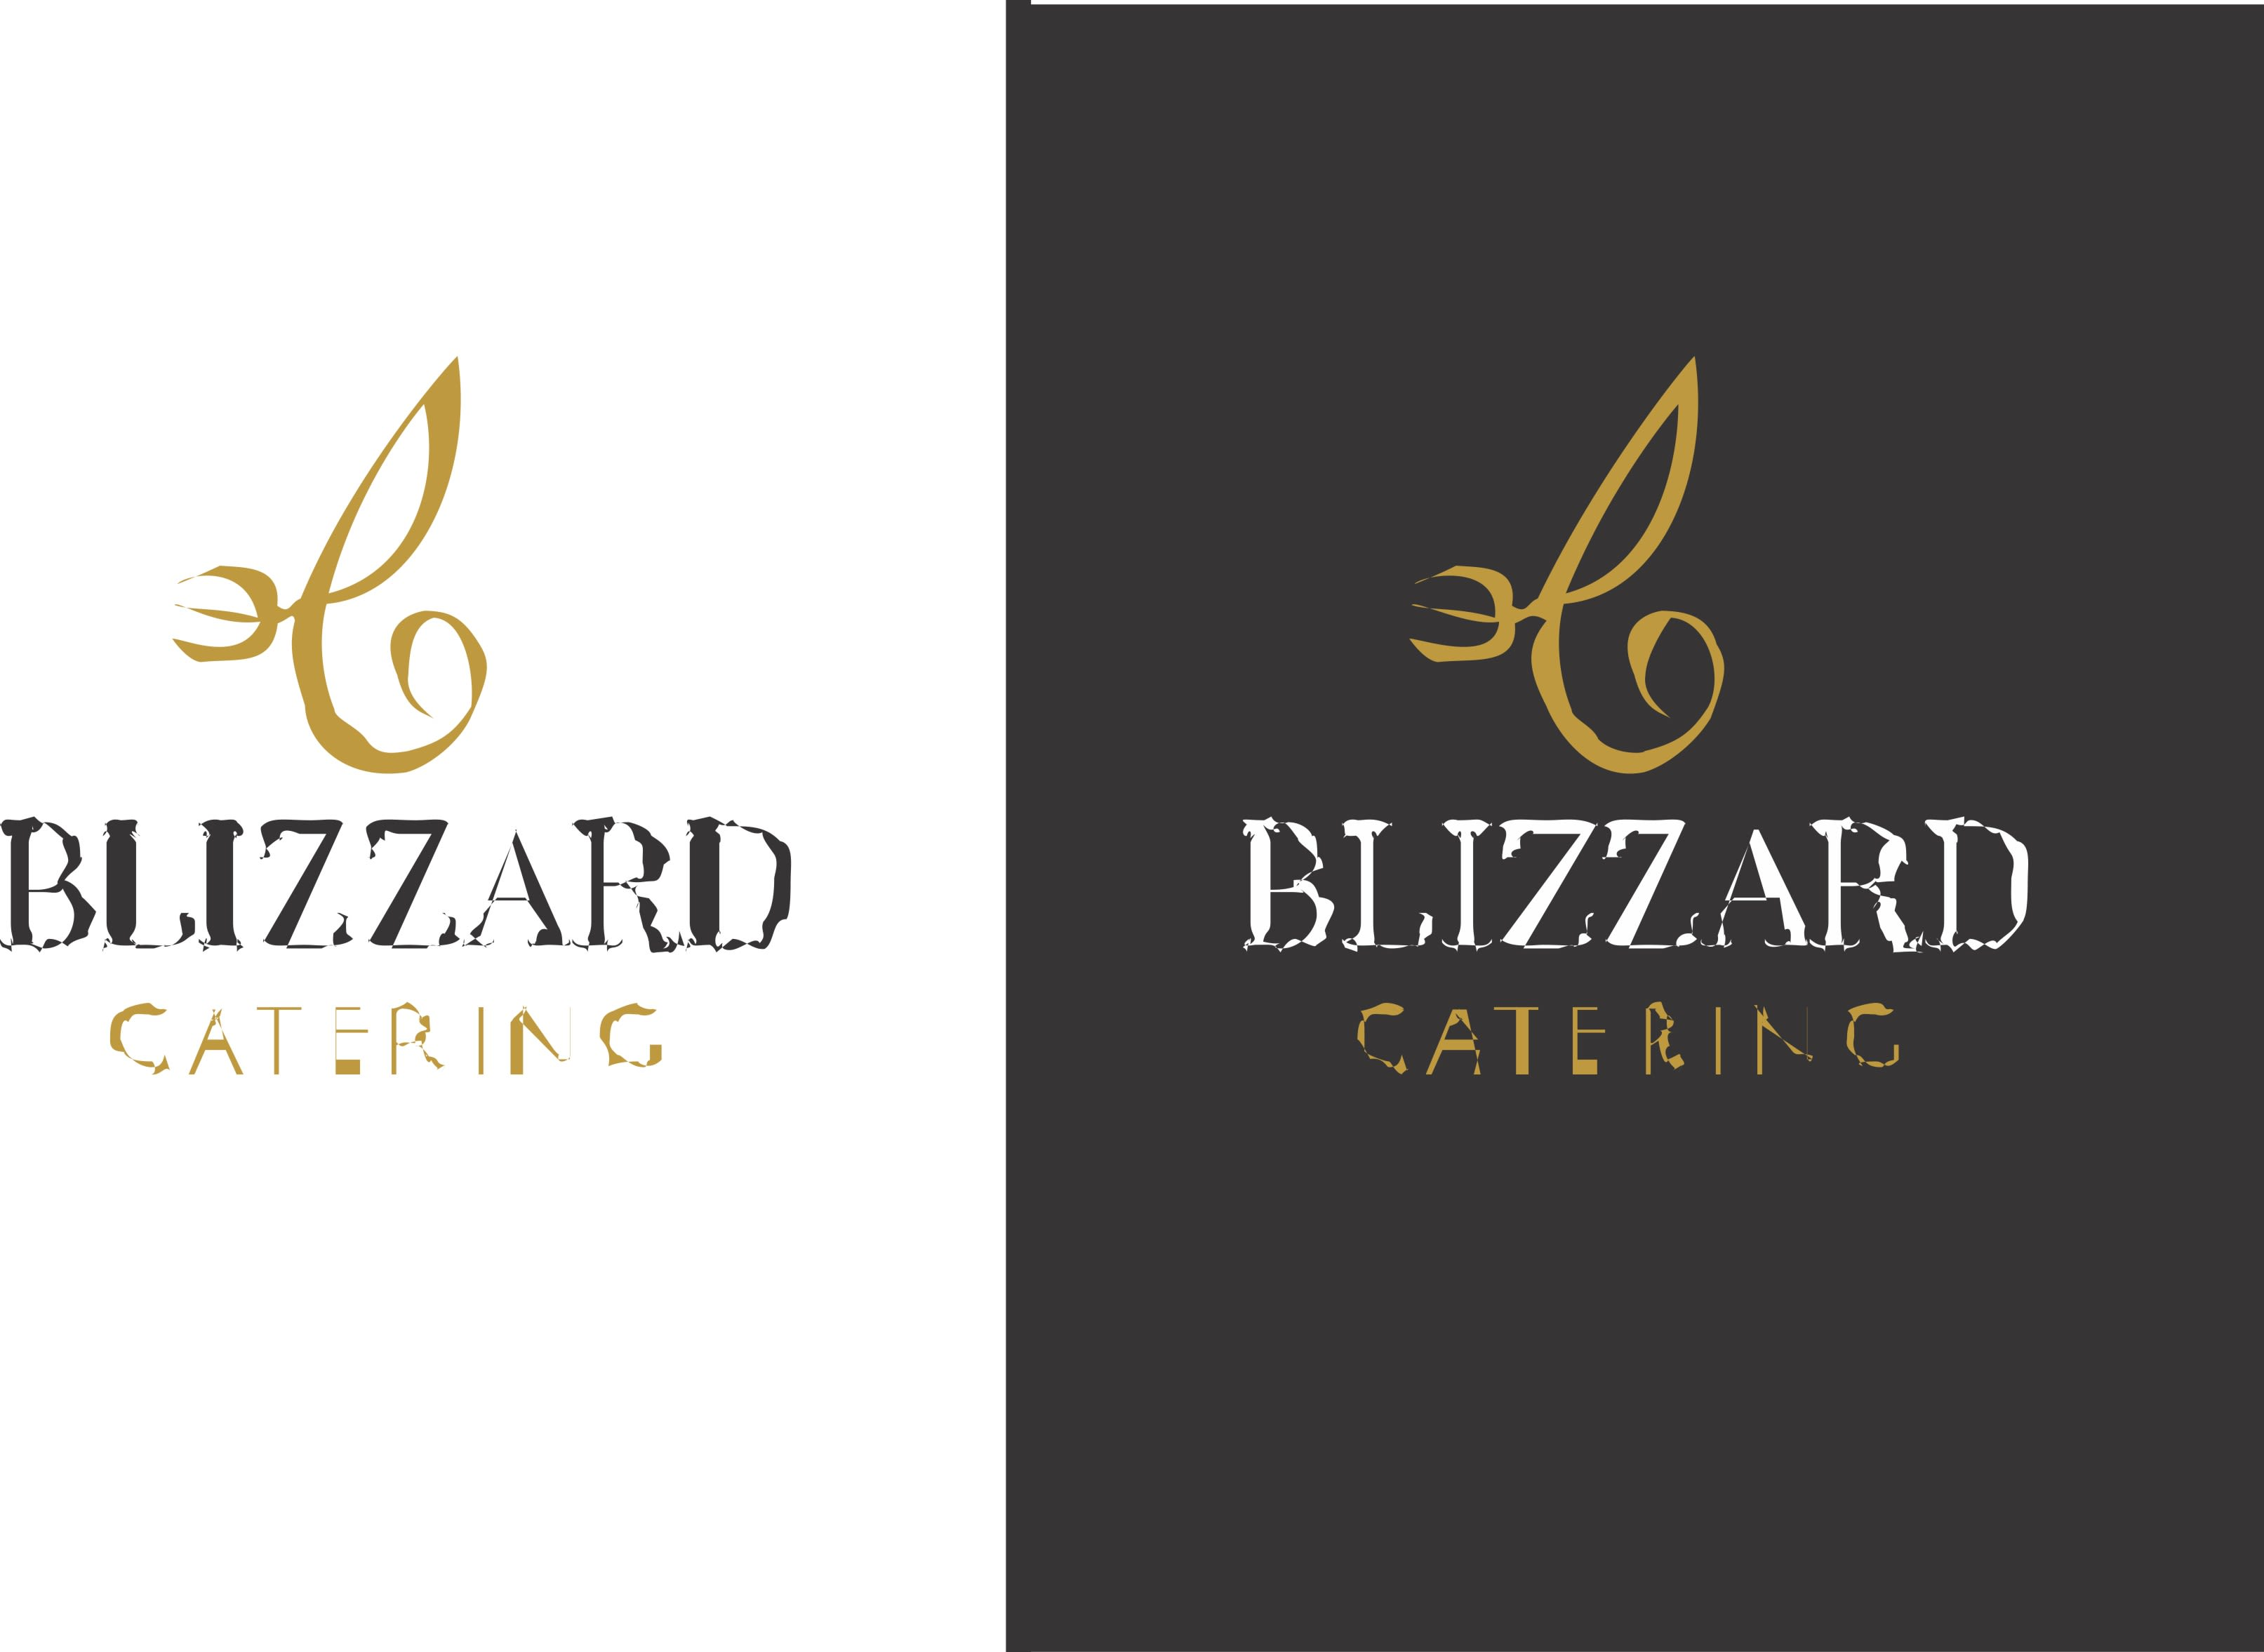 Blizzard catering